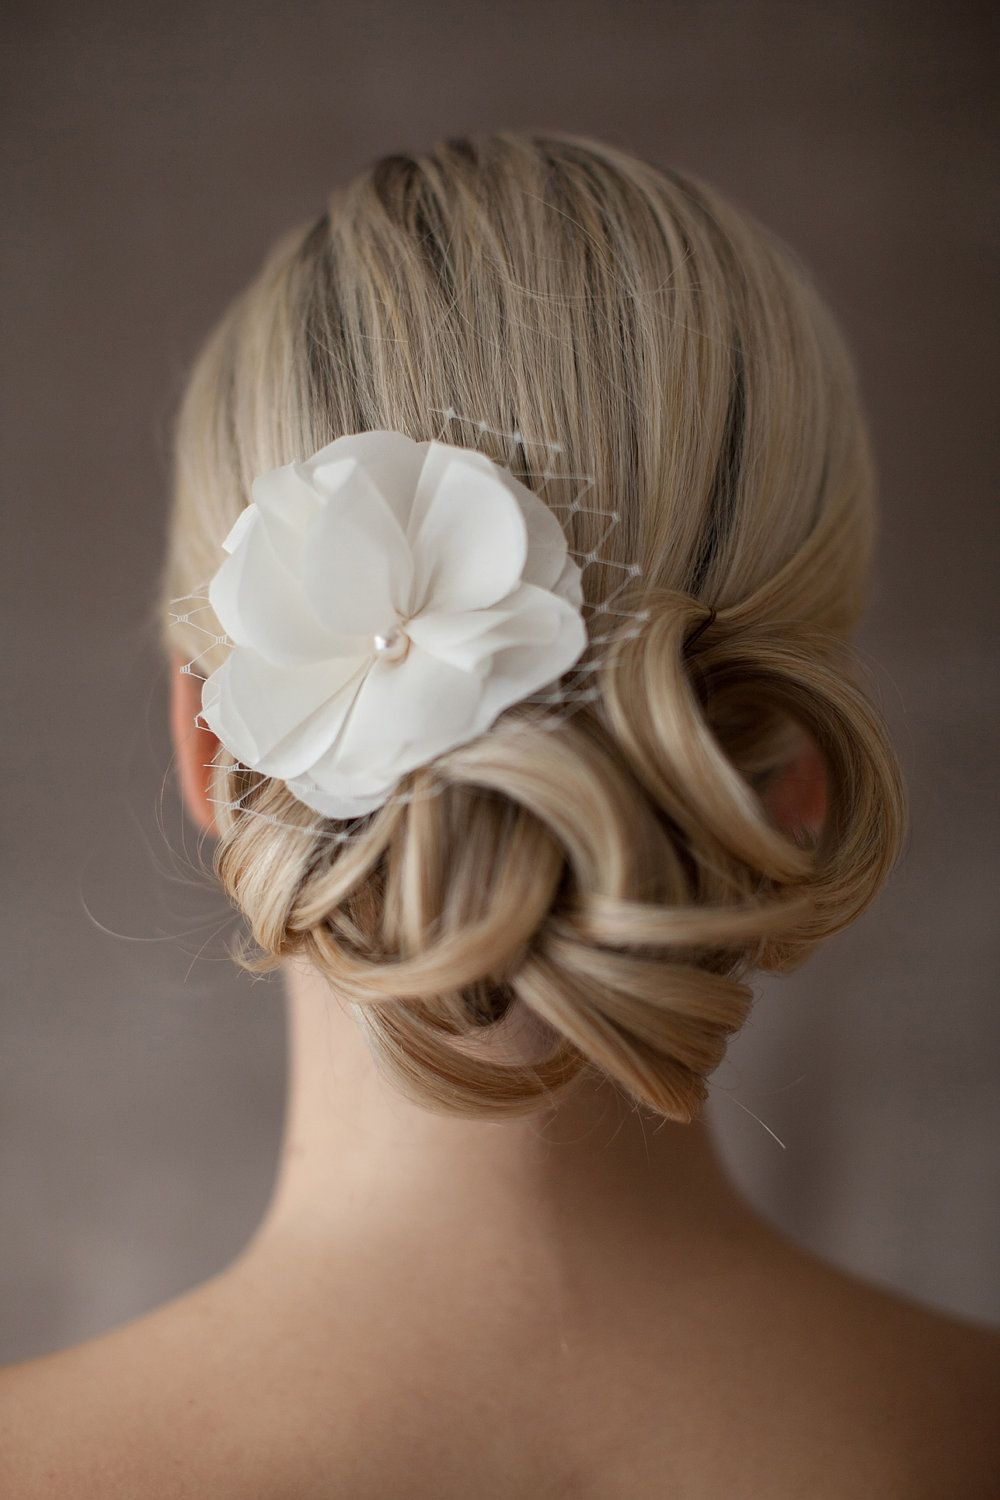 Bridal Silk Flower Wedding Hair Flower Netting